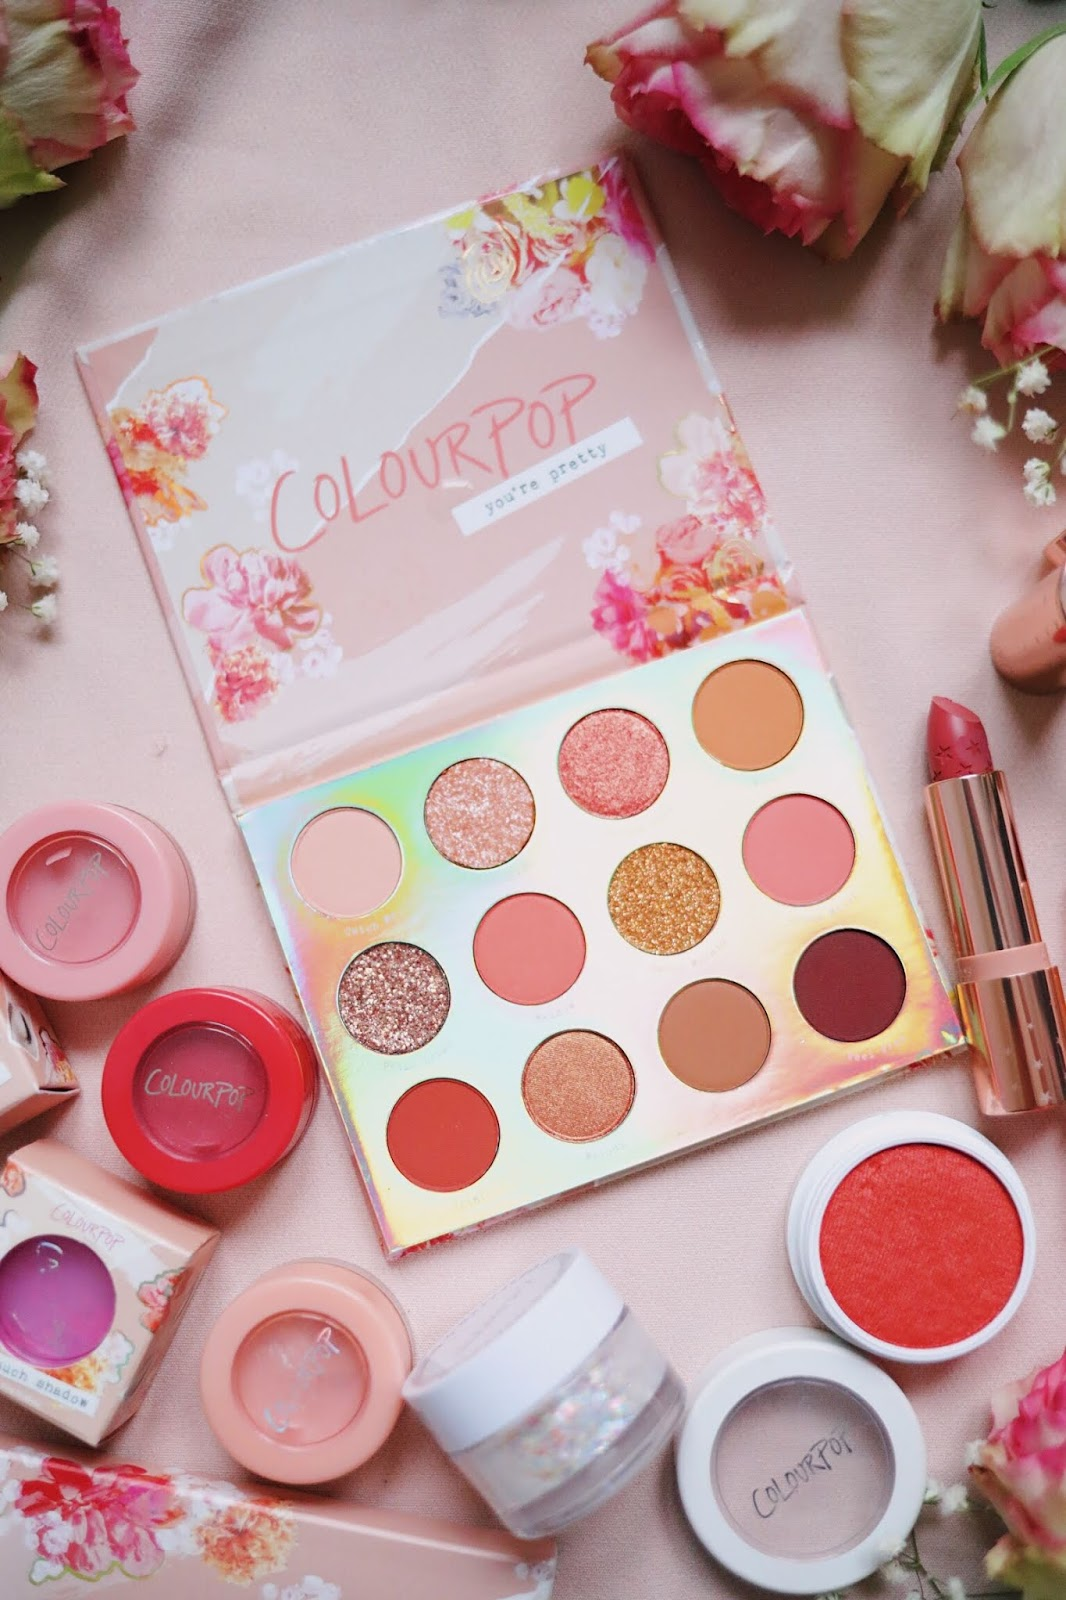 Colourpop, Sweet talk , Sweet talk palette , Spring 2019 , revue , avis , rose mademoiselle , rose mademoiselle , blog beauté, paris